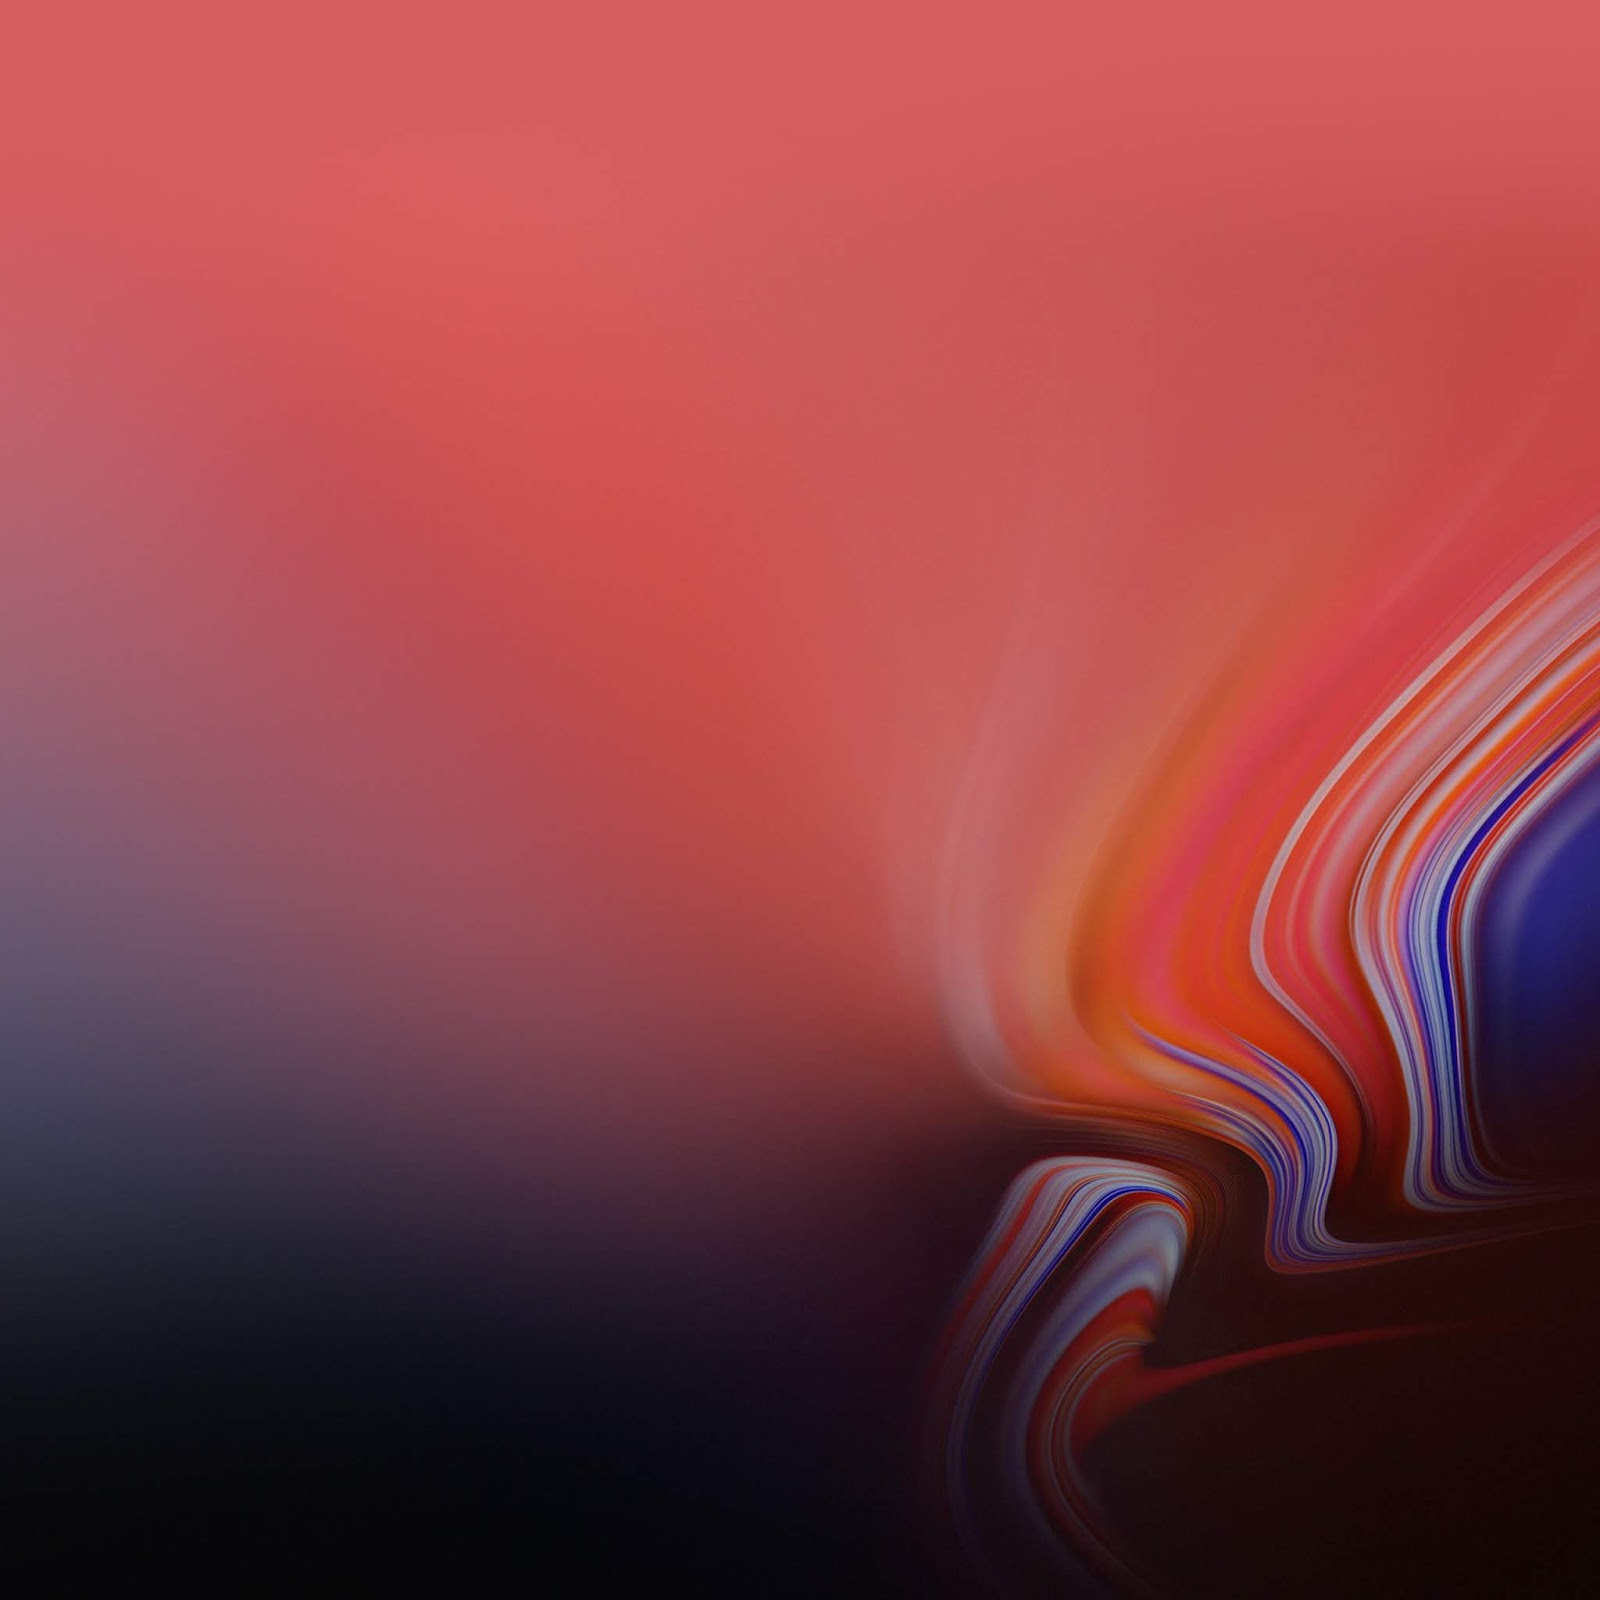 Download Samsung Galaxy Note 9 Wallpapers Hd And 4k Insopra